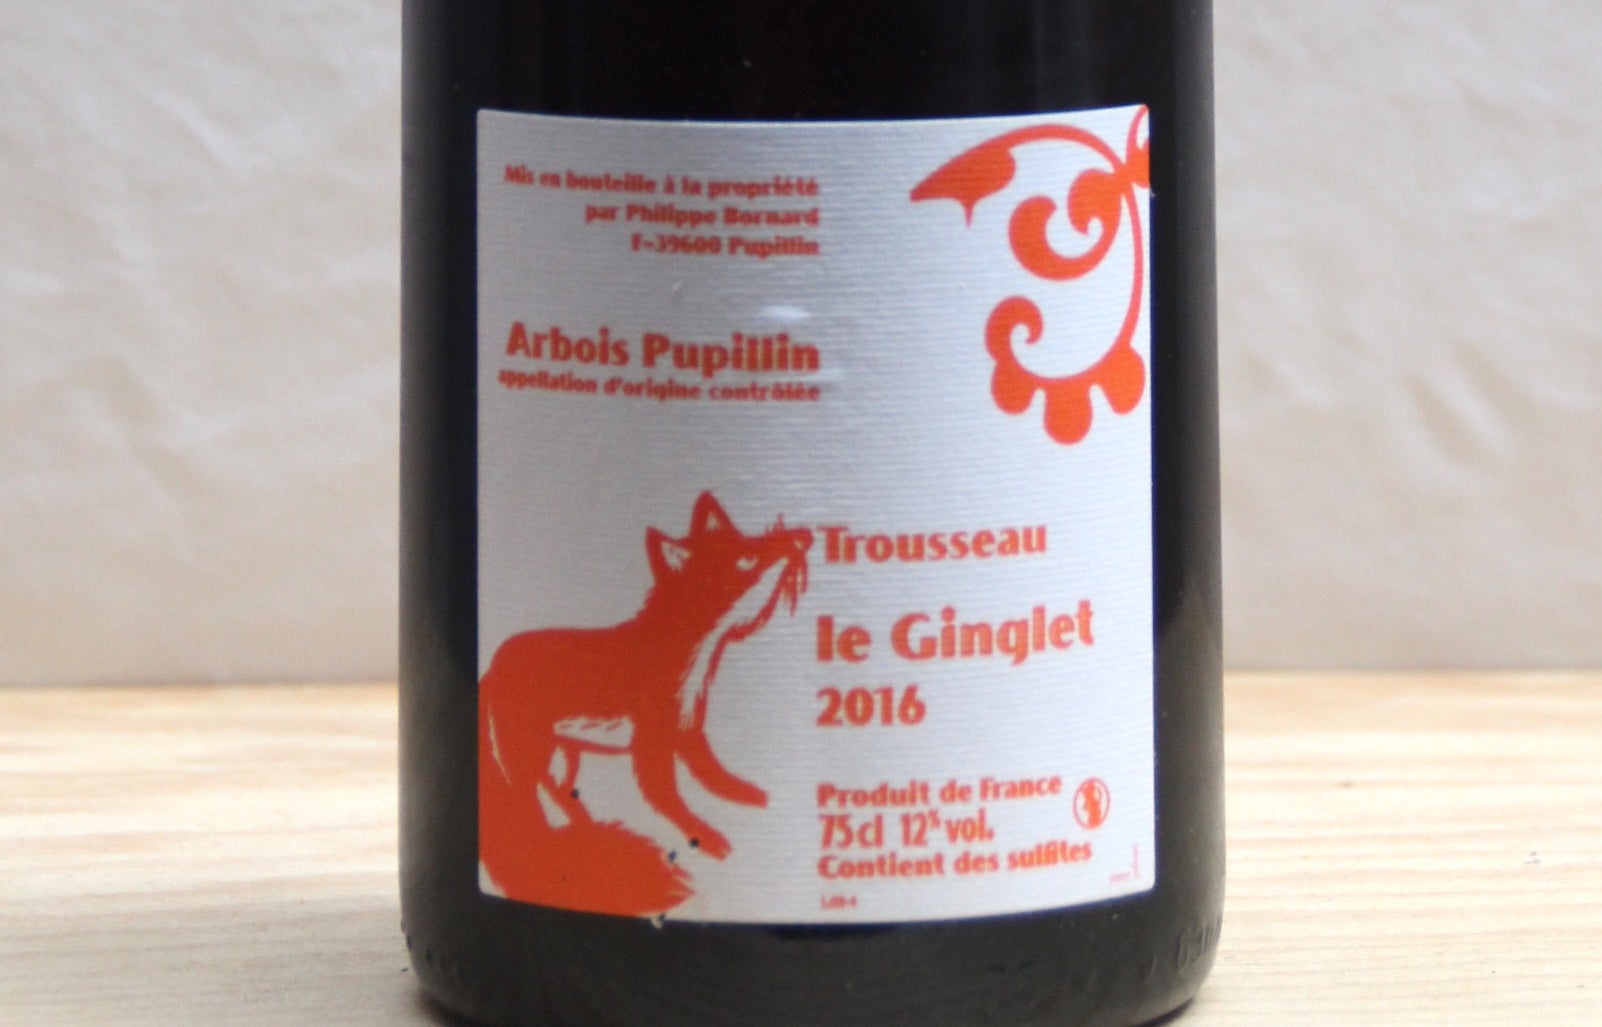 Le Ginglet 2016 - Domaine Bornard - SOLD OUT